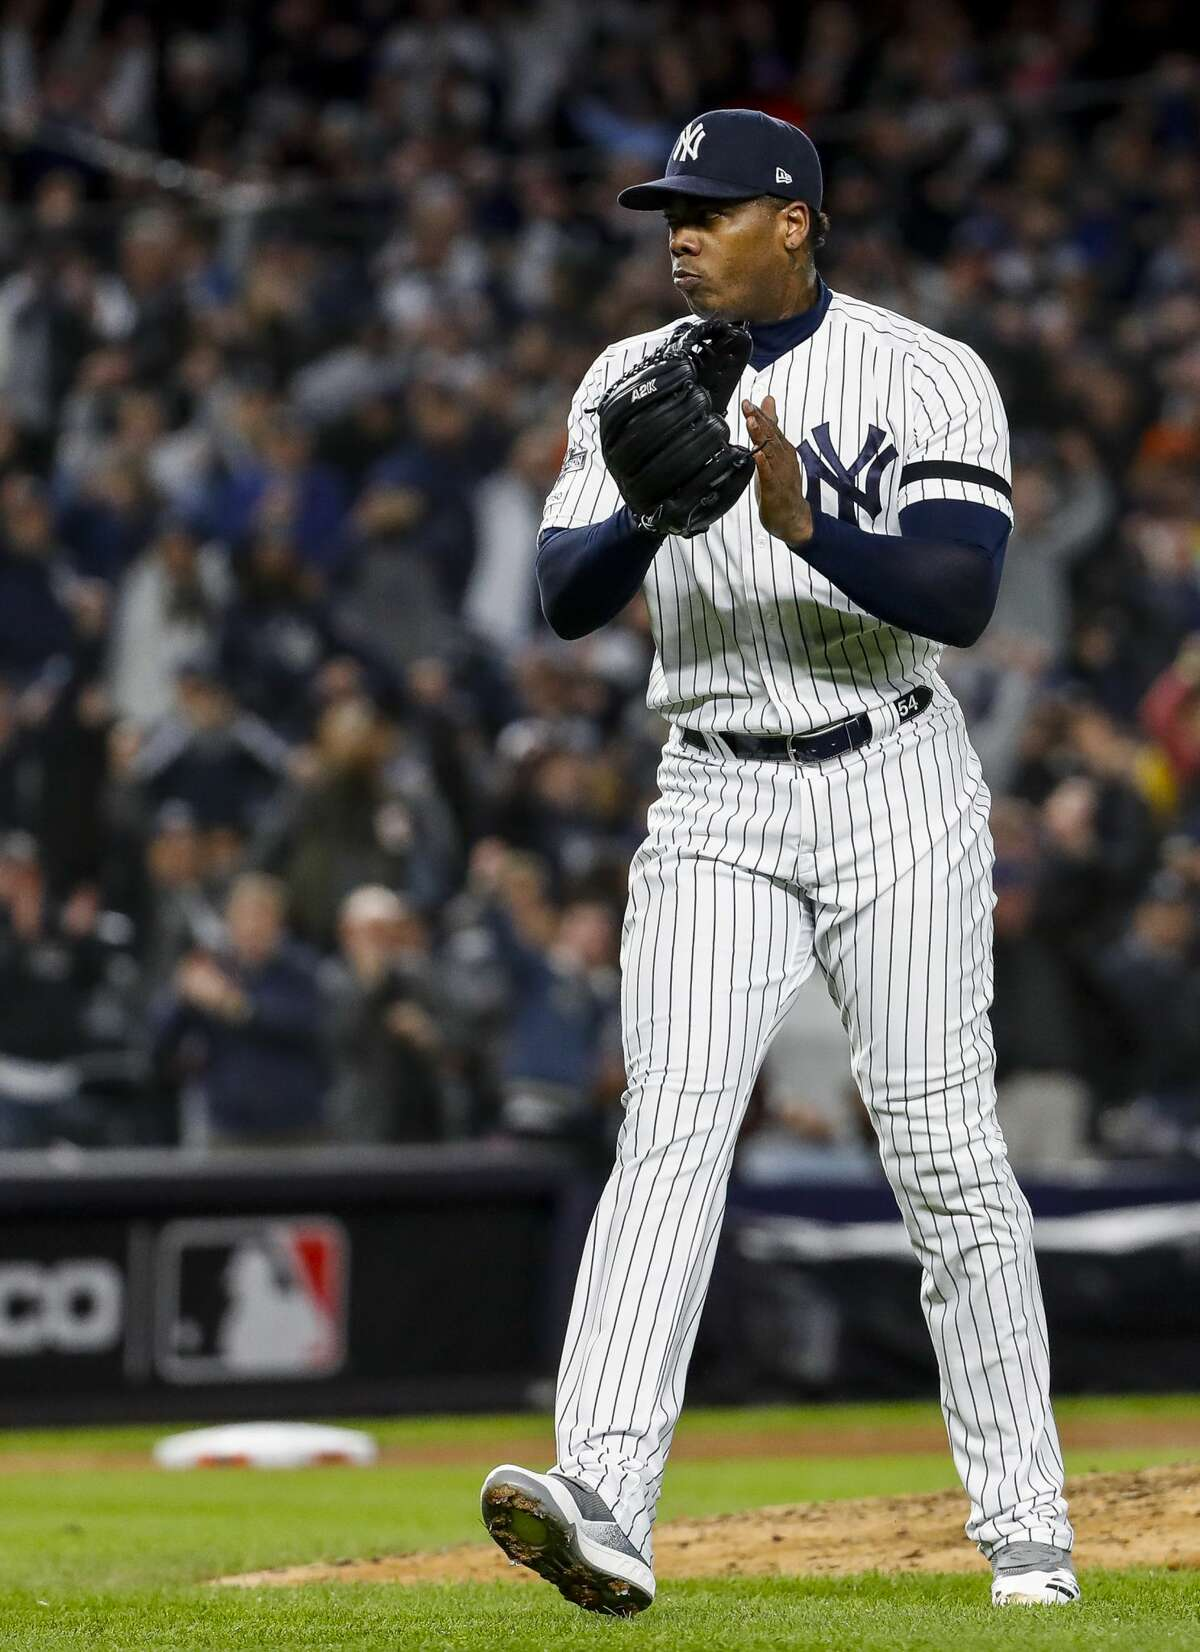 New York Yankees relief pitcher Aroldis Chapman (54) celebrates after getting the save and defeating the Houston Astros 4-1 in Game 5 of the American League Championship Series at Yankee Stadium on Friday, Oct. 18, 2019, in New York.